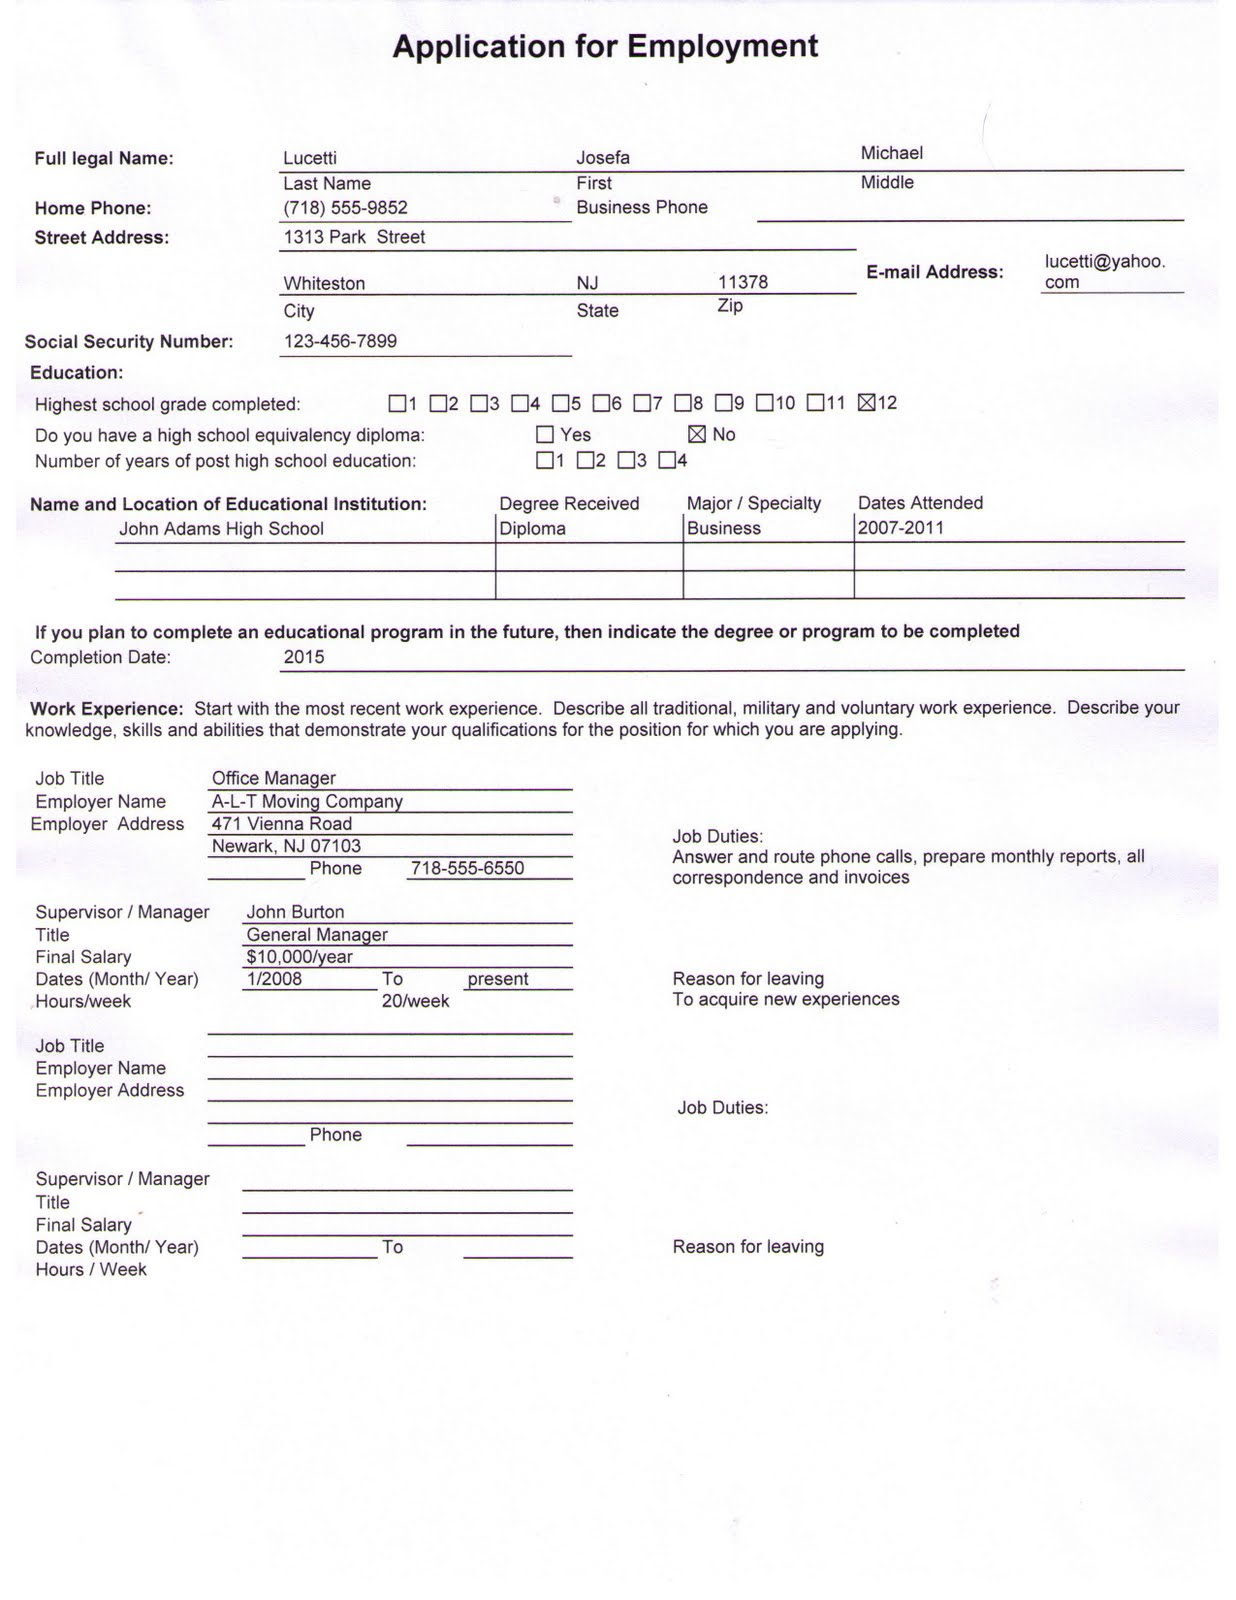 job application use this as a sample to fill out your own applicationEmployment Application Sample